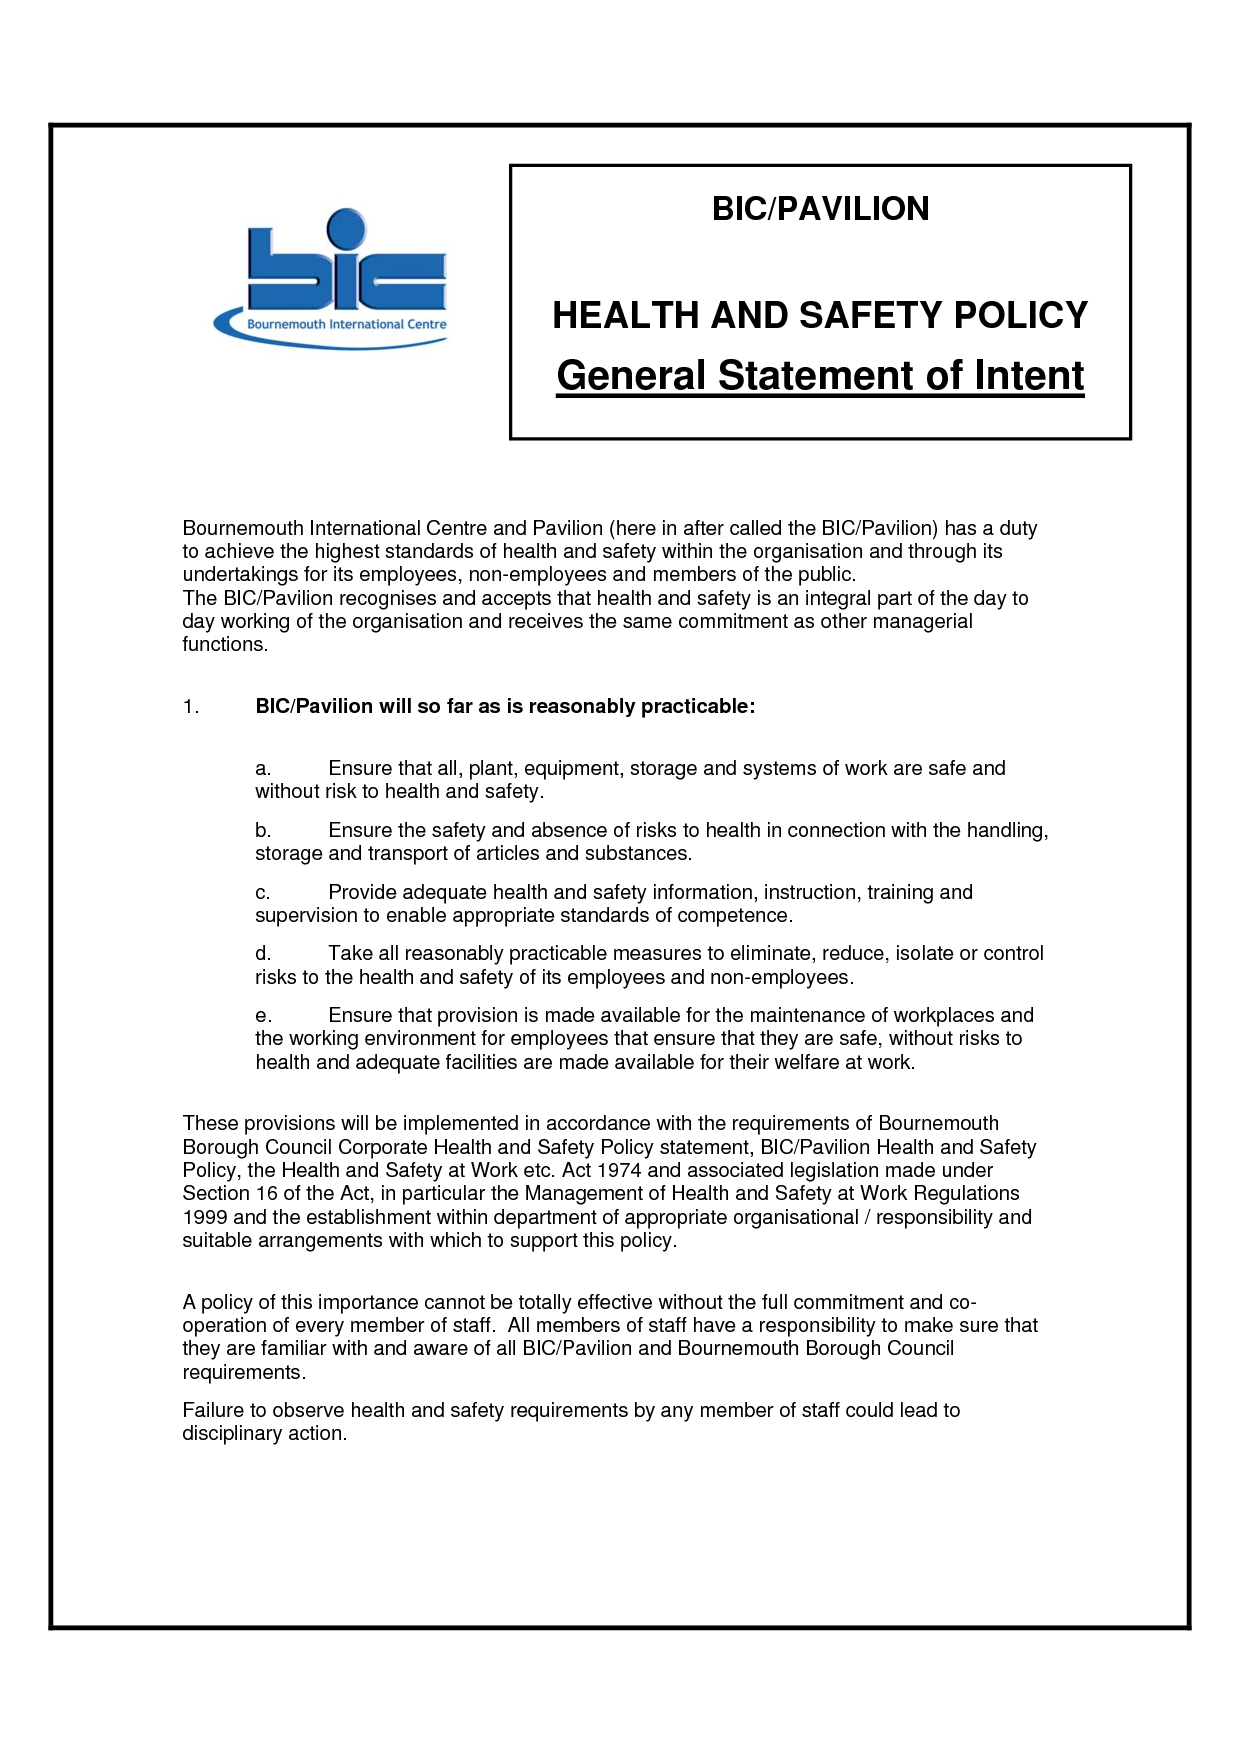 Hse Health And Safety Policy Template Personal Safety Commitment Quotes QuotesGram